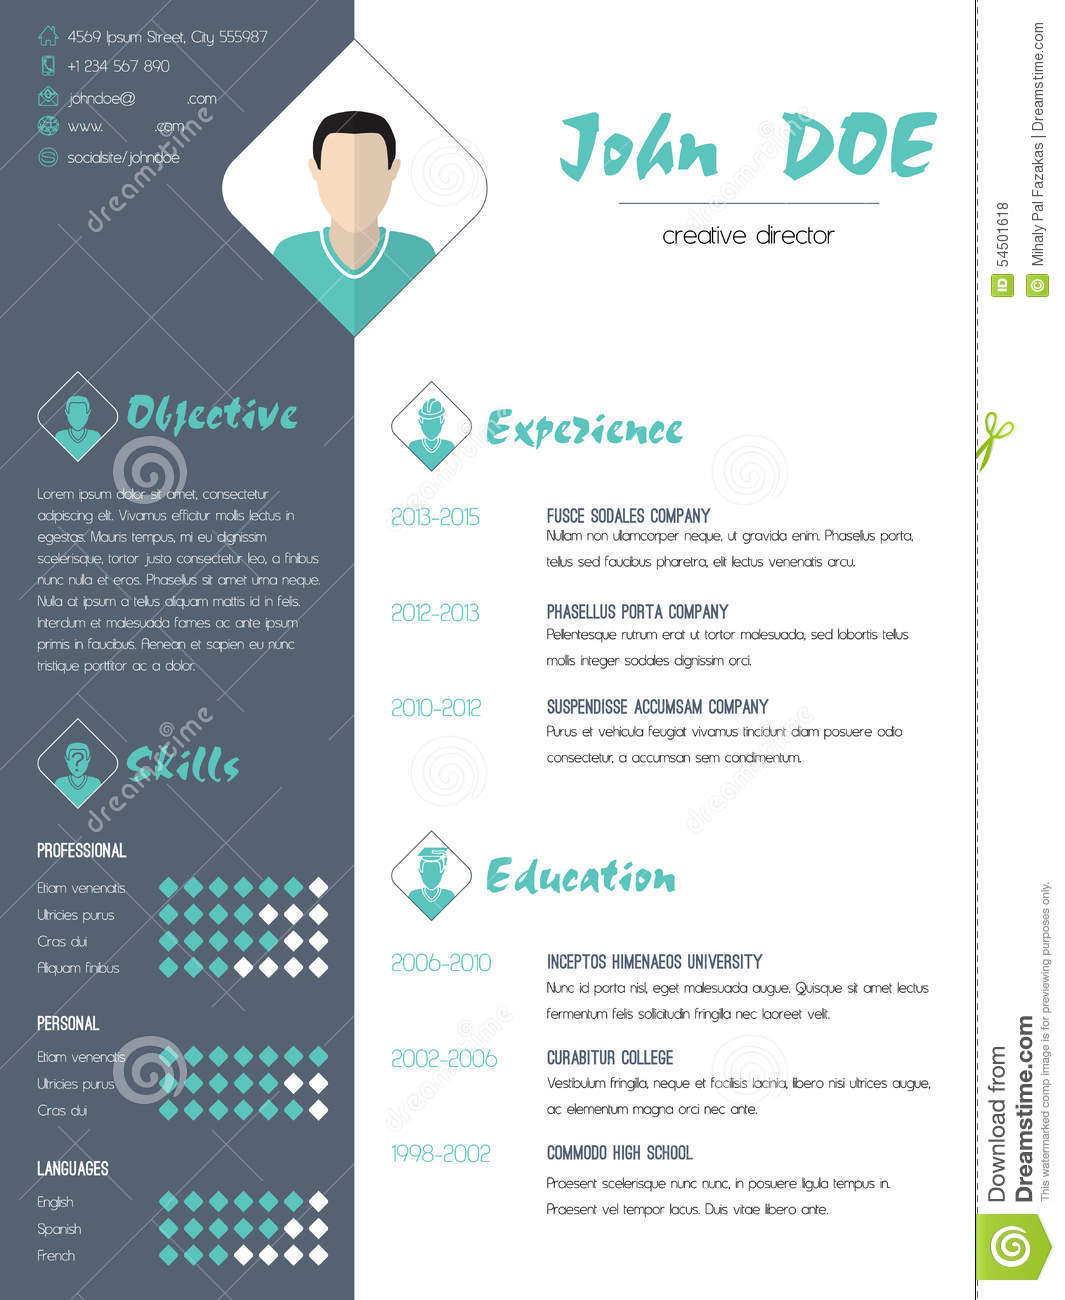 Modern Curriculum Vitae Resume With Photo  Resume Or Curriculum Vitae